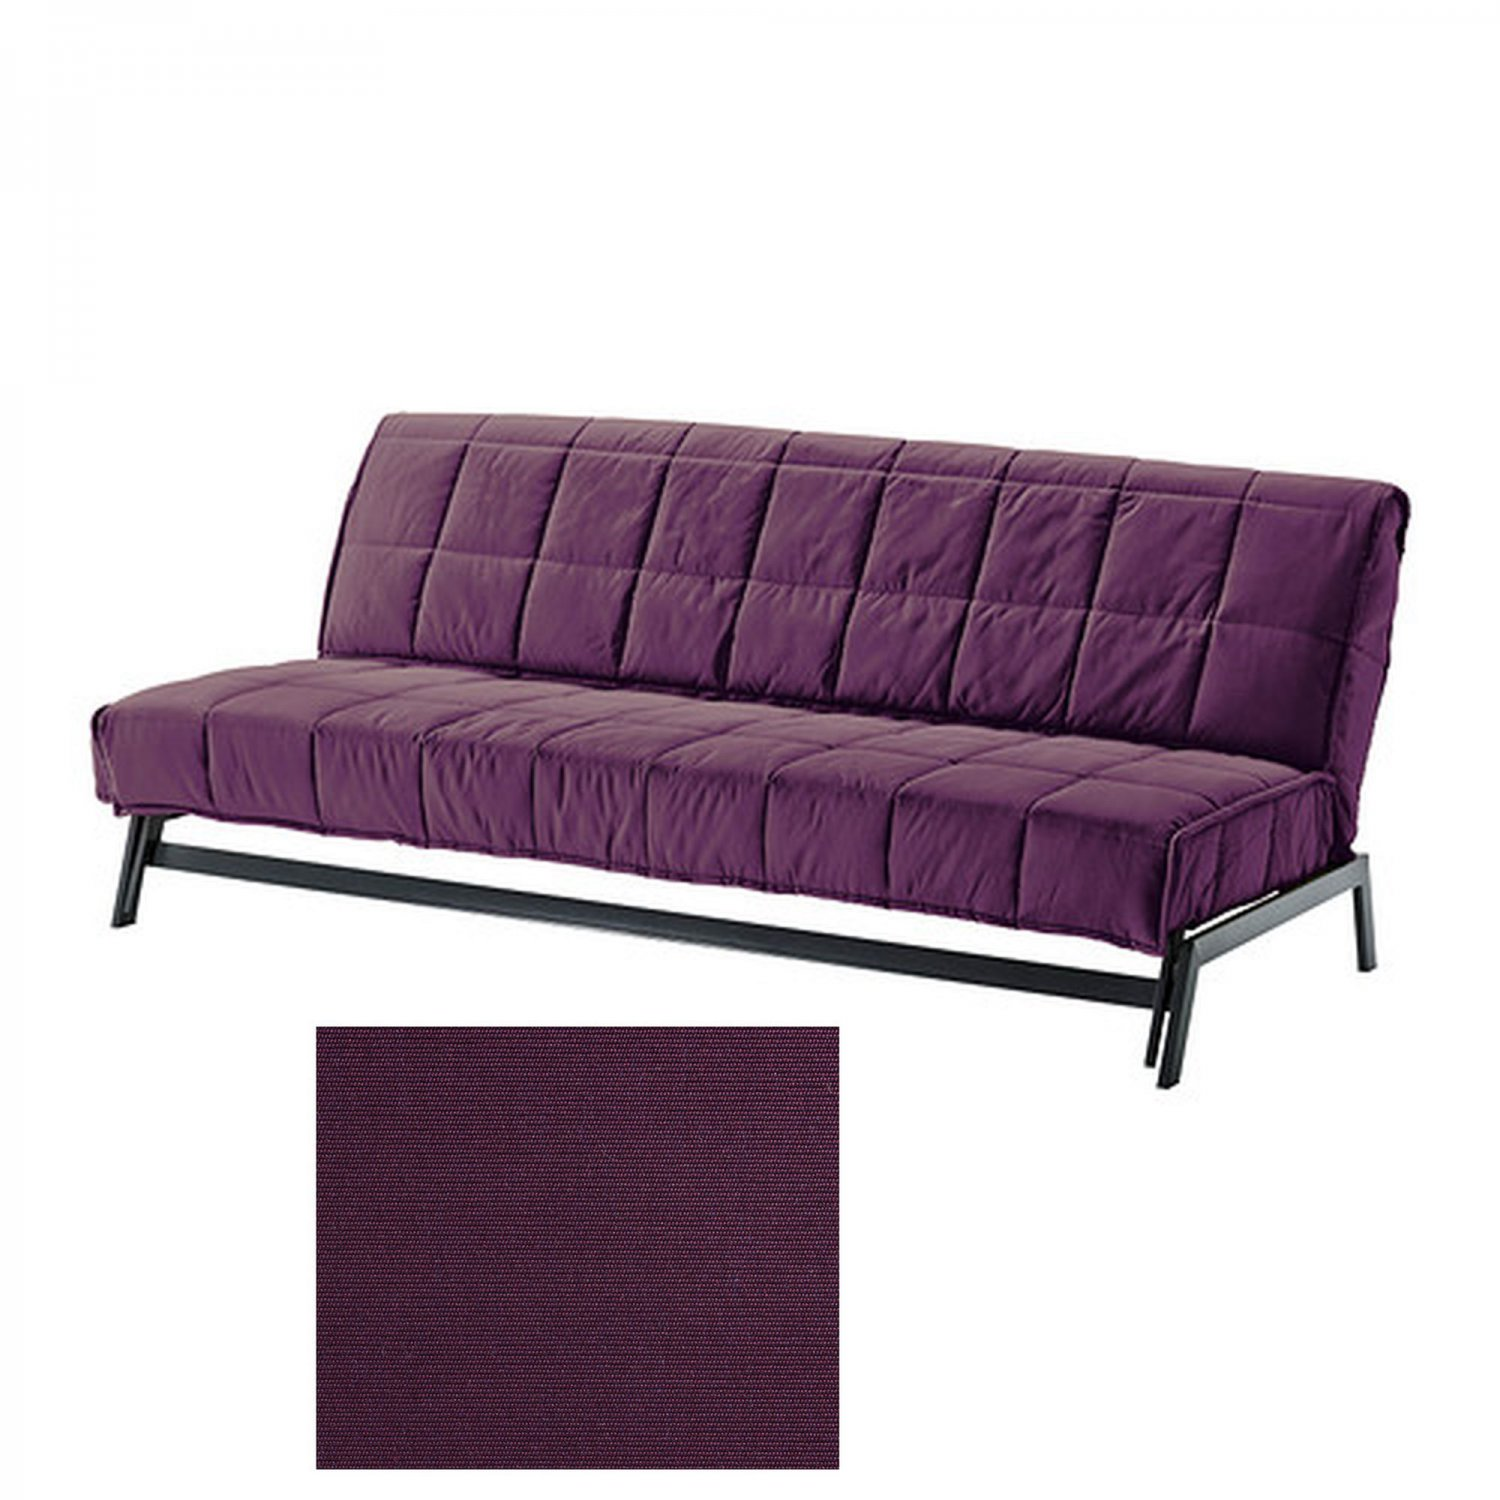 IKEA KARLABY Sofa Bed Sofabed SLIPCOVER Cover SIVIK DARK  : 54ee349983b4554622b from rock-paper-scissors.ecrater.co.uk size 1500 x 1500 jpeg 191kB